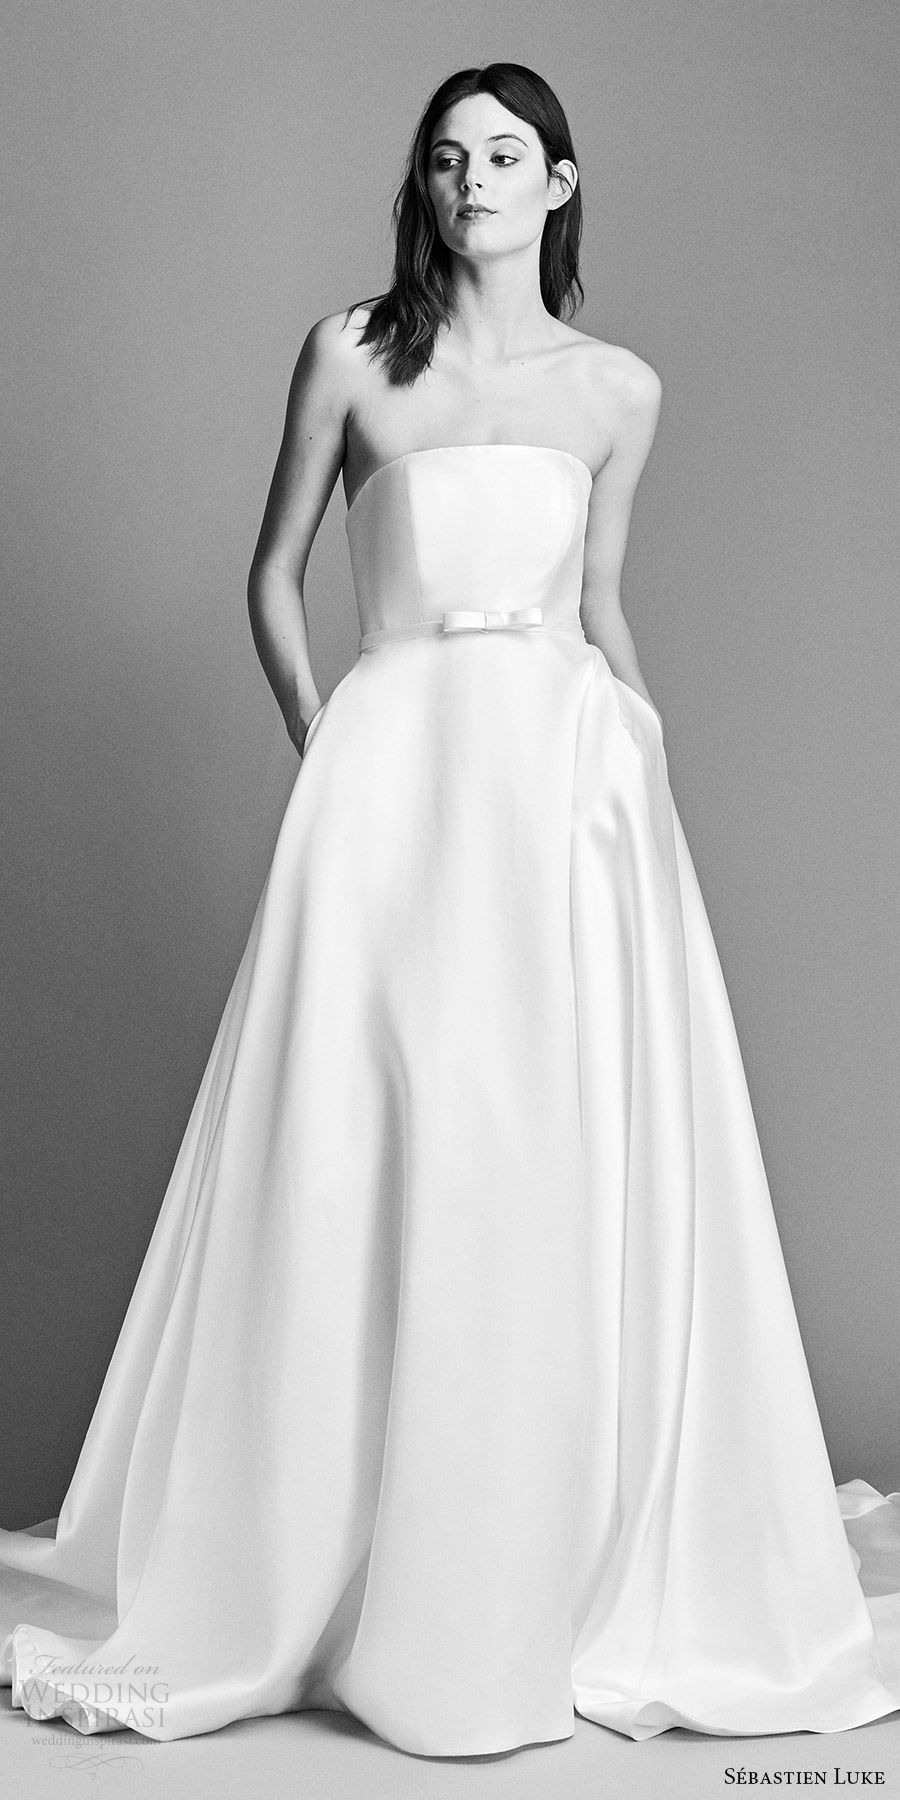 Sébastien luke spring wedding dresses cathedral train